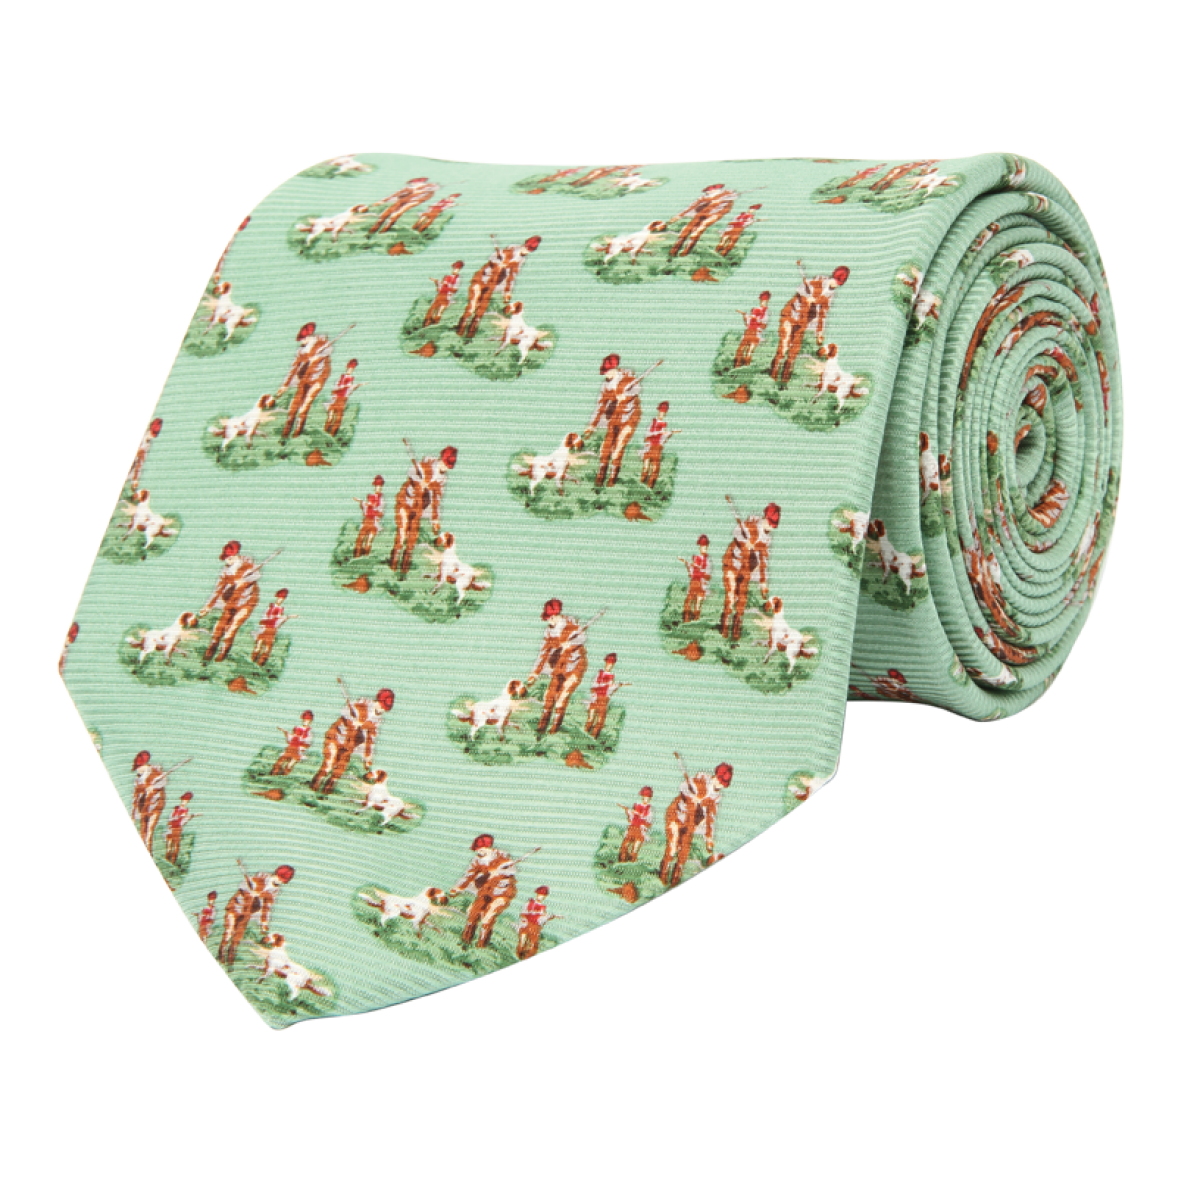 Wm. Lamb & Son - Hunter & Son Tie - Green